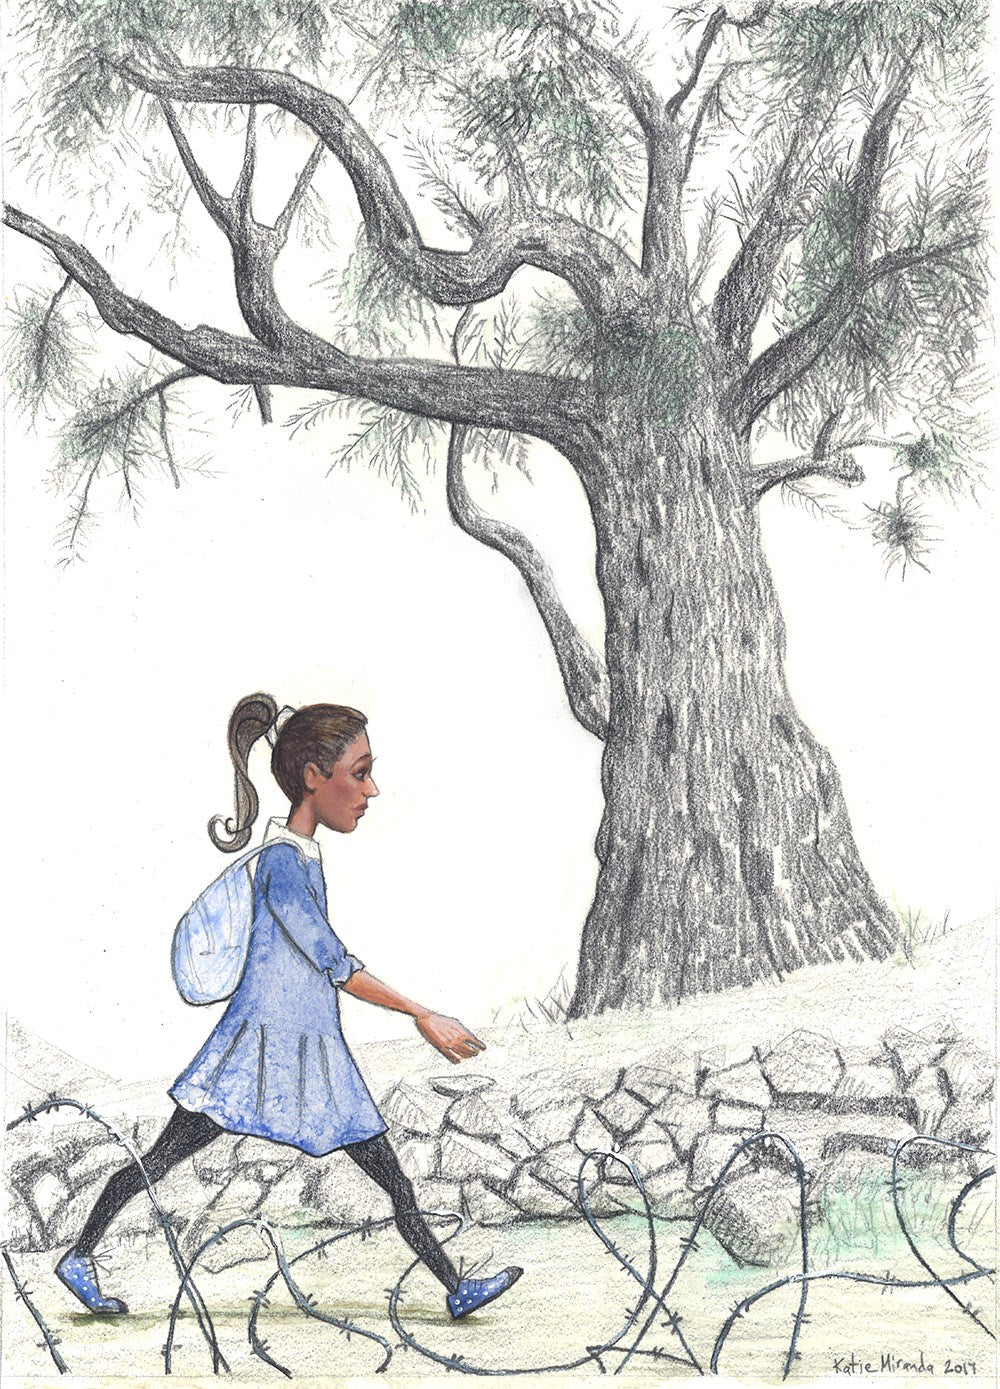 A Palestinian girl walks to school (SOLD)